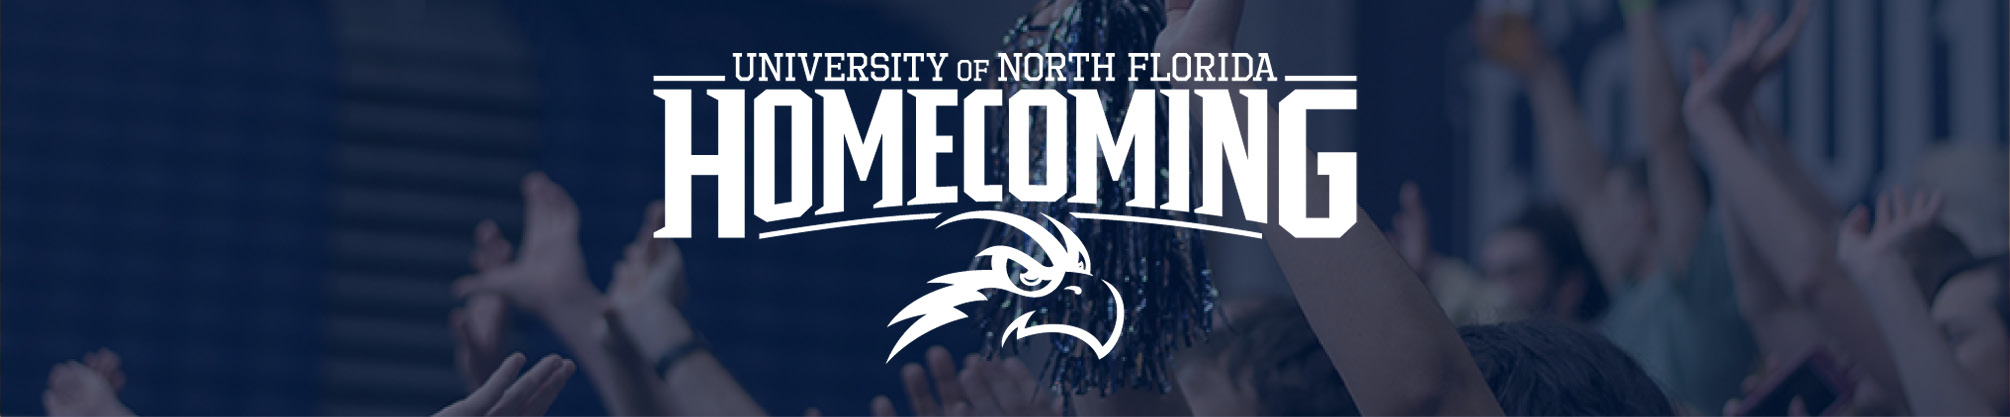 UNF Homecoming 2020